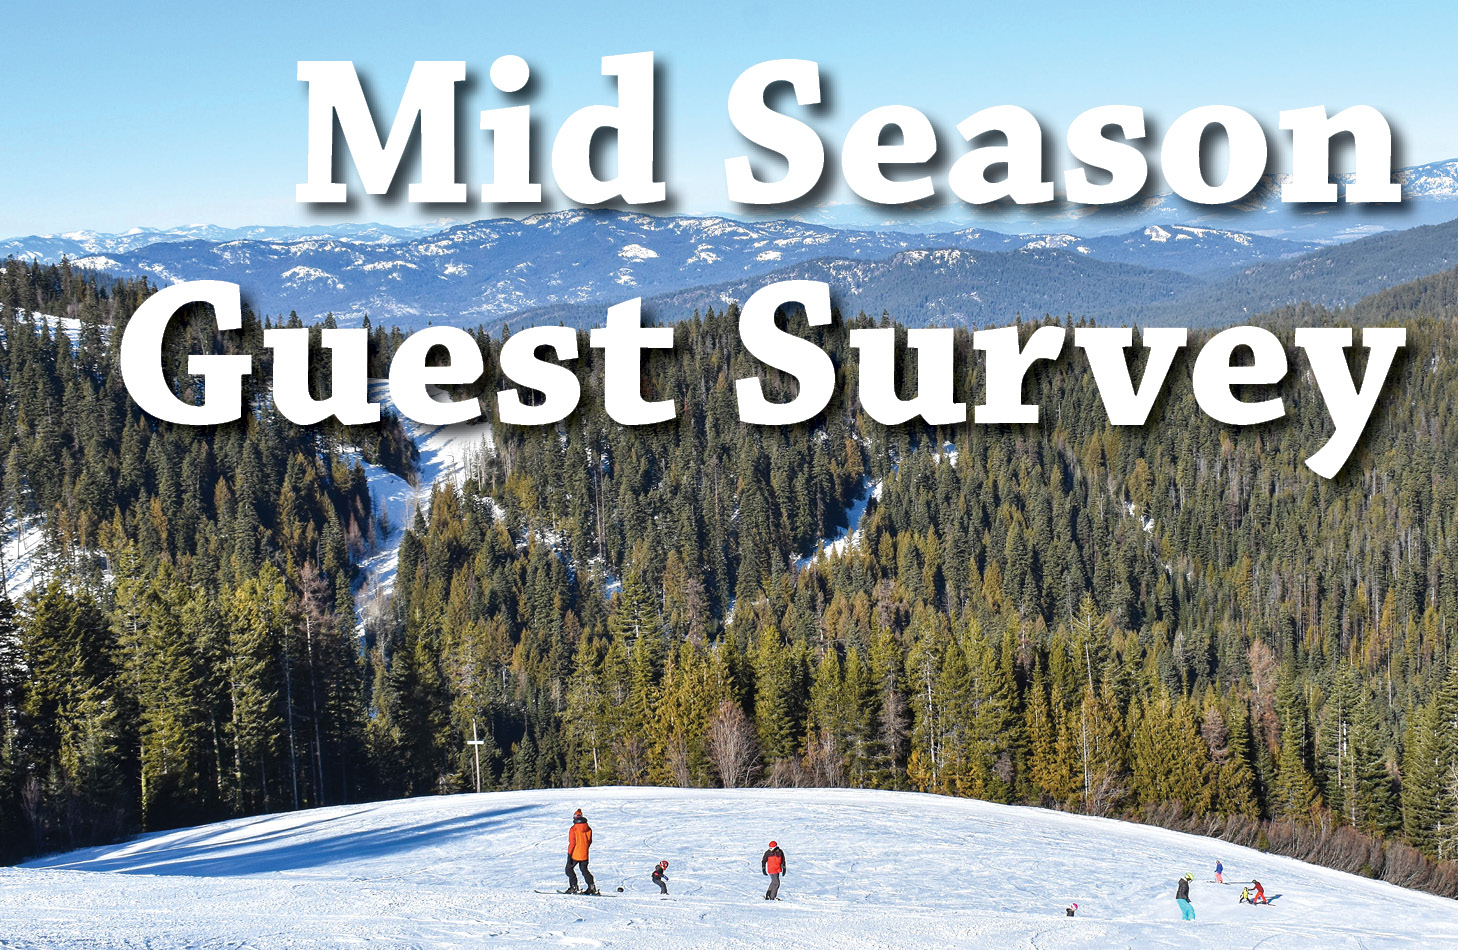 Mid Season Guest Survey